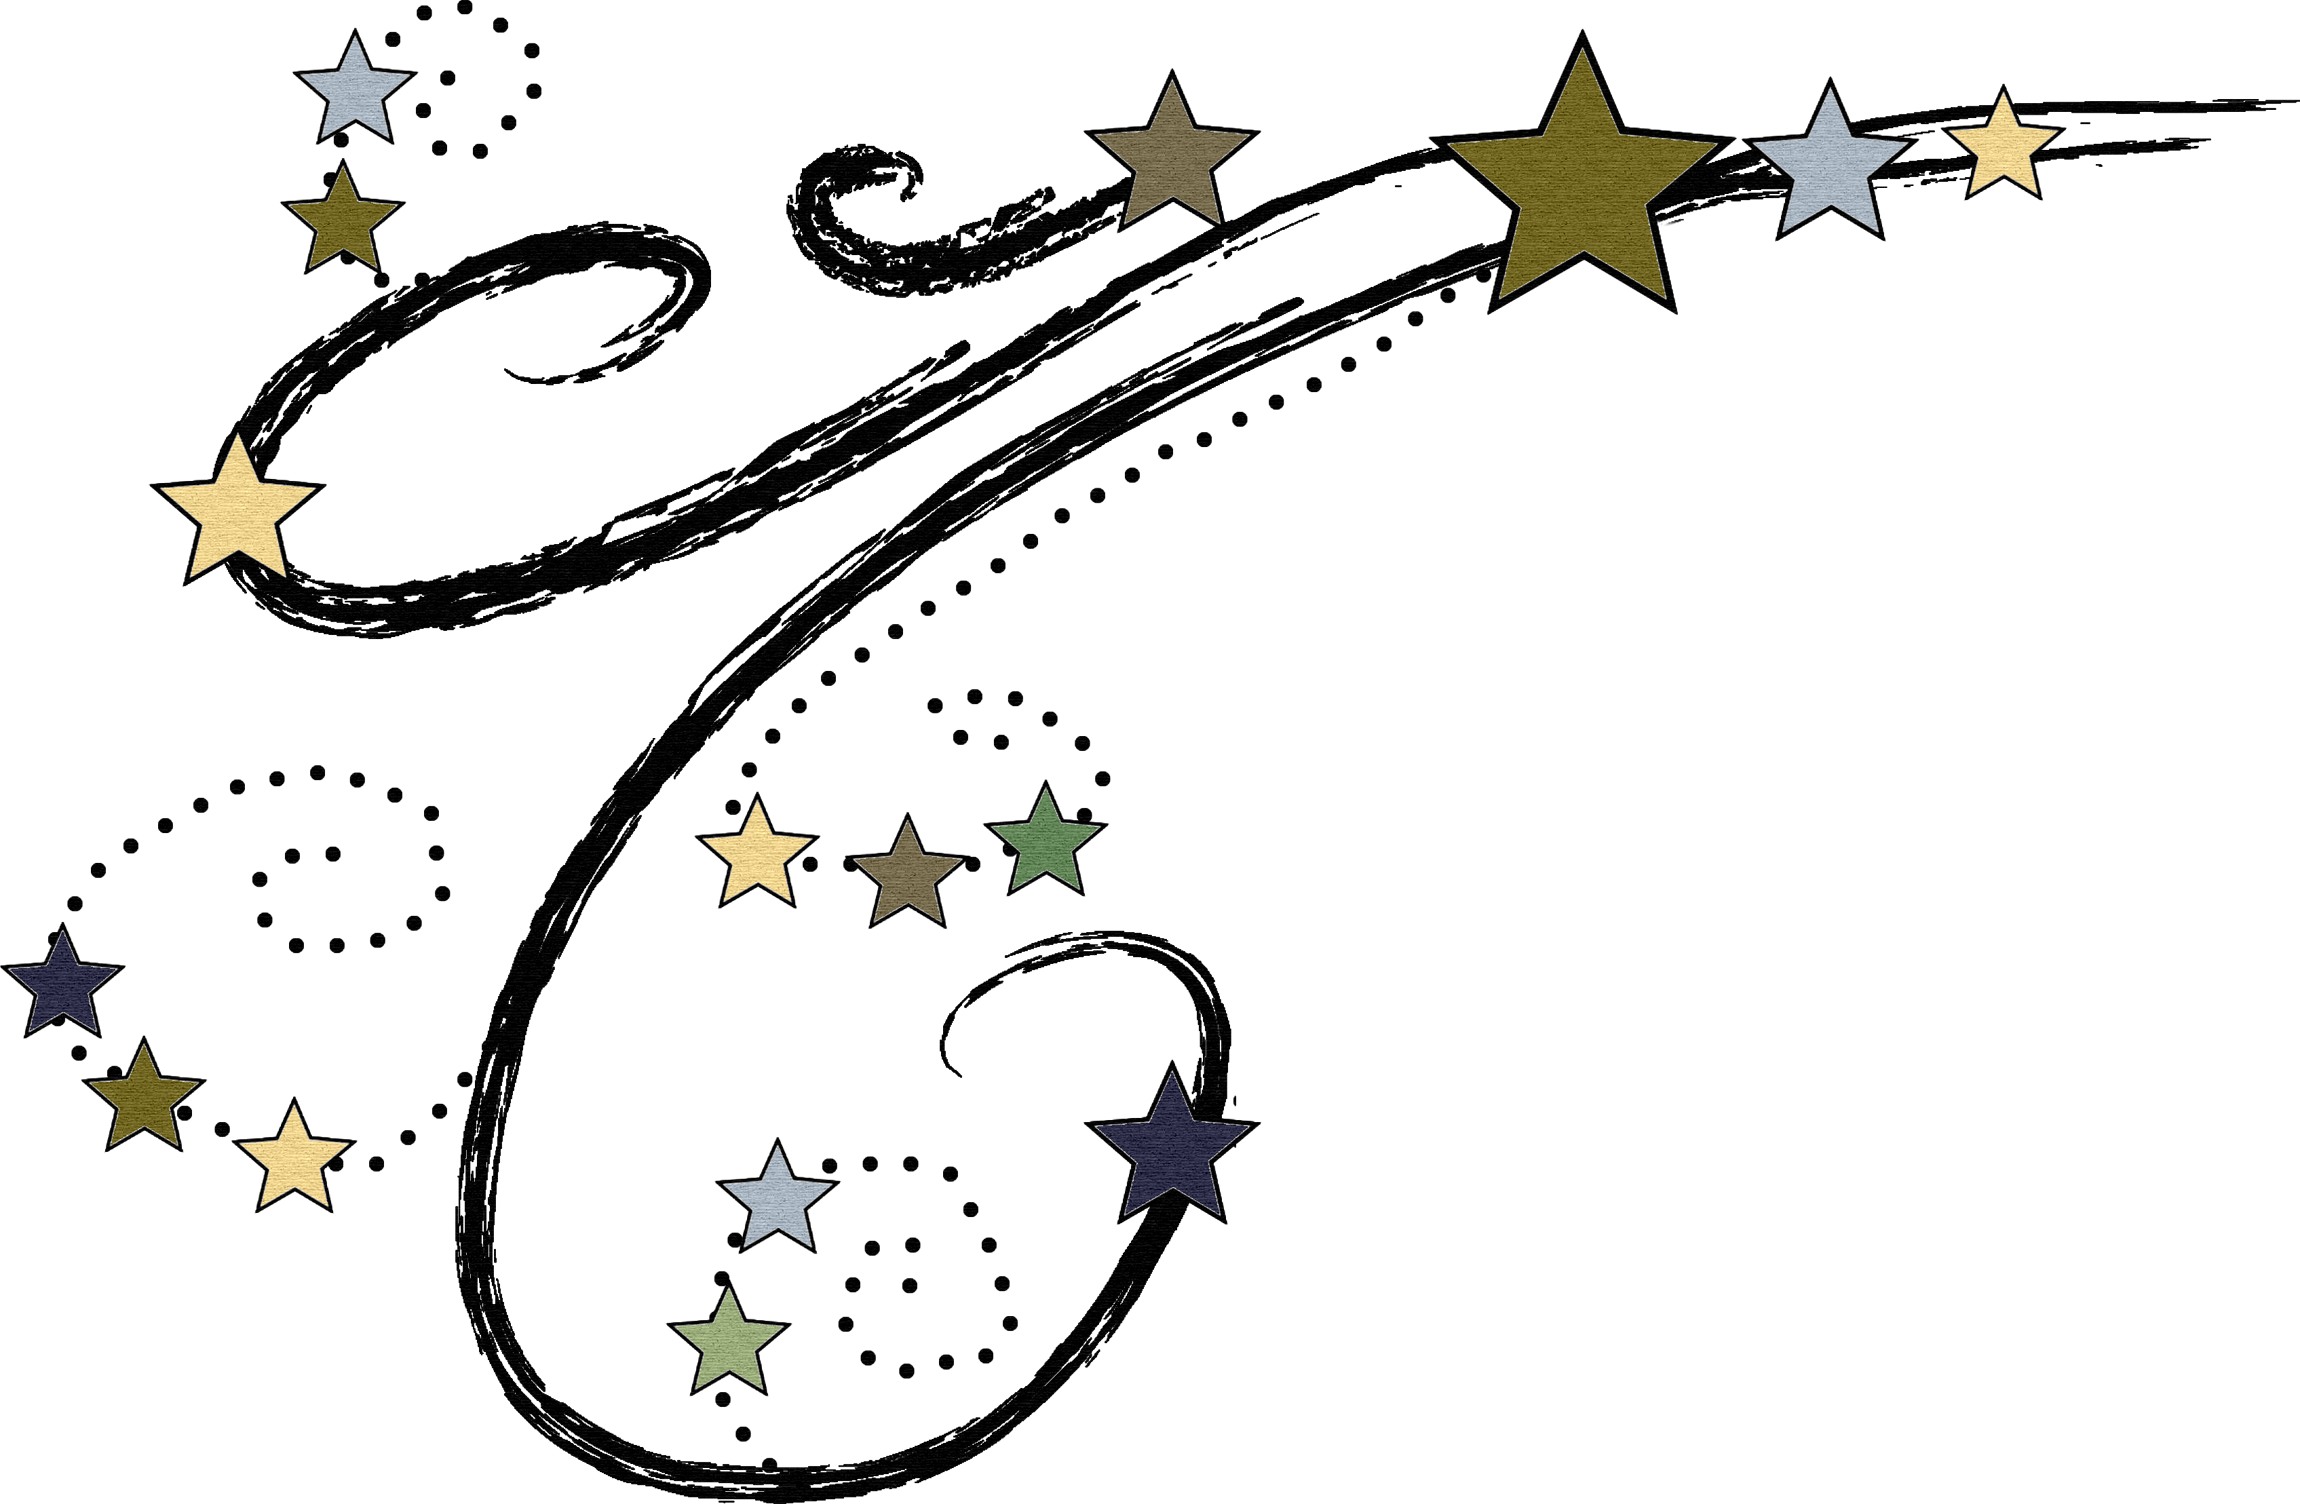 Falling Stars clipart reach for star Stars Shooting The com Star